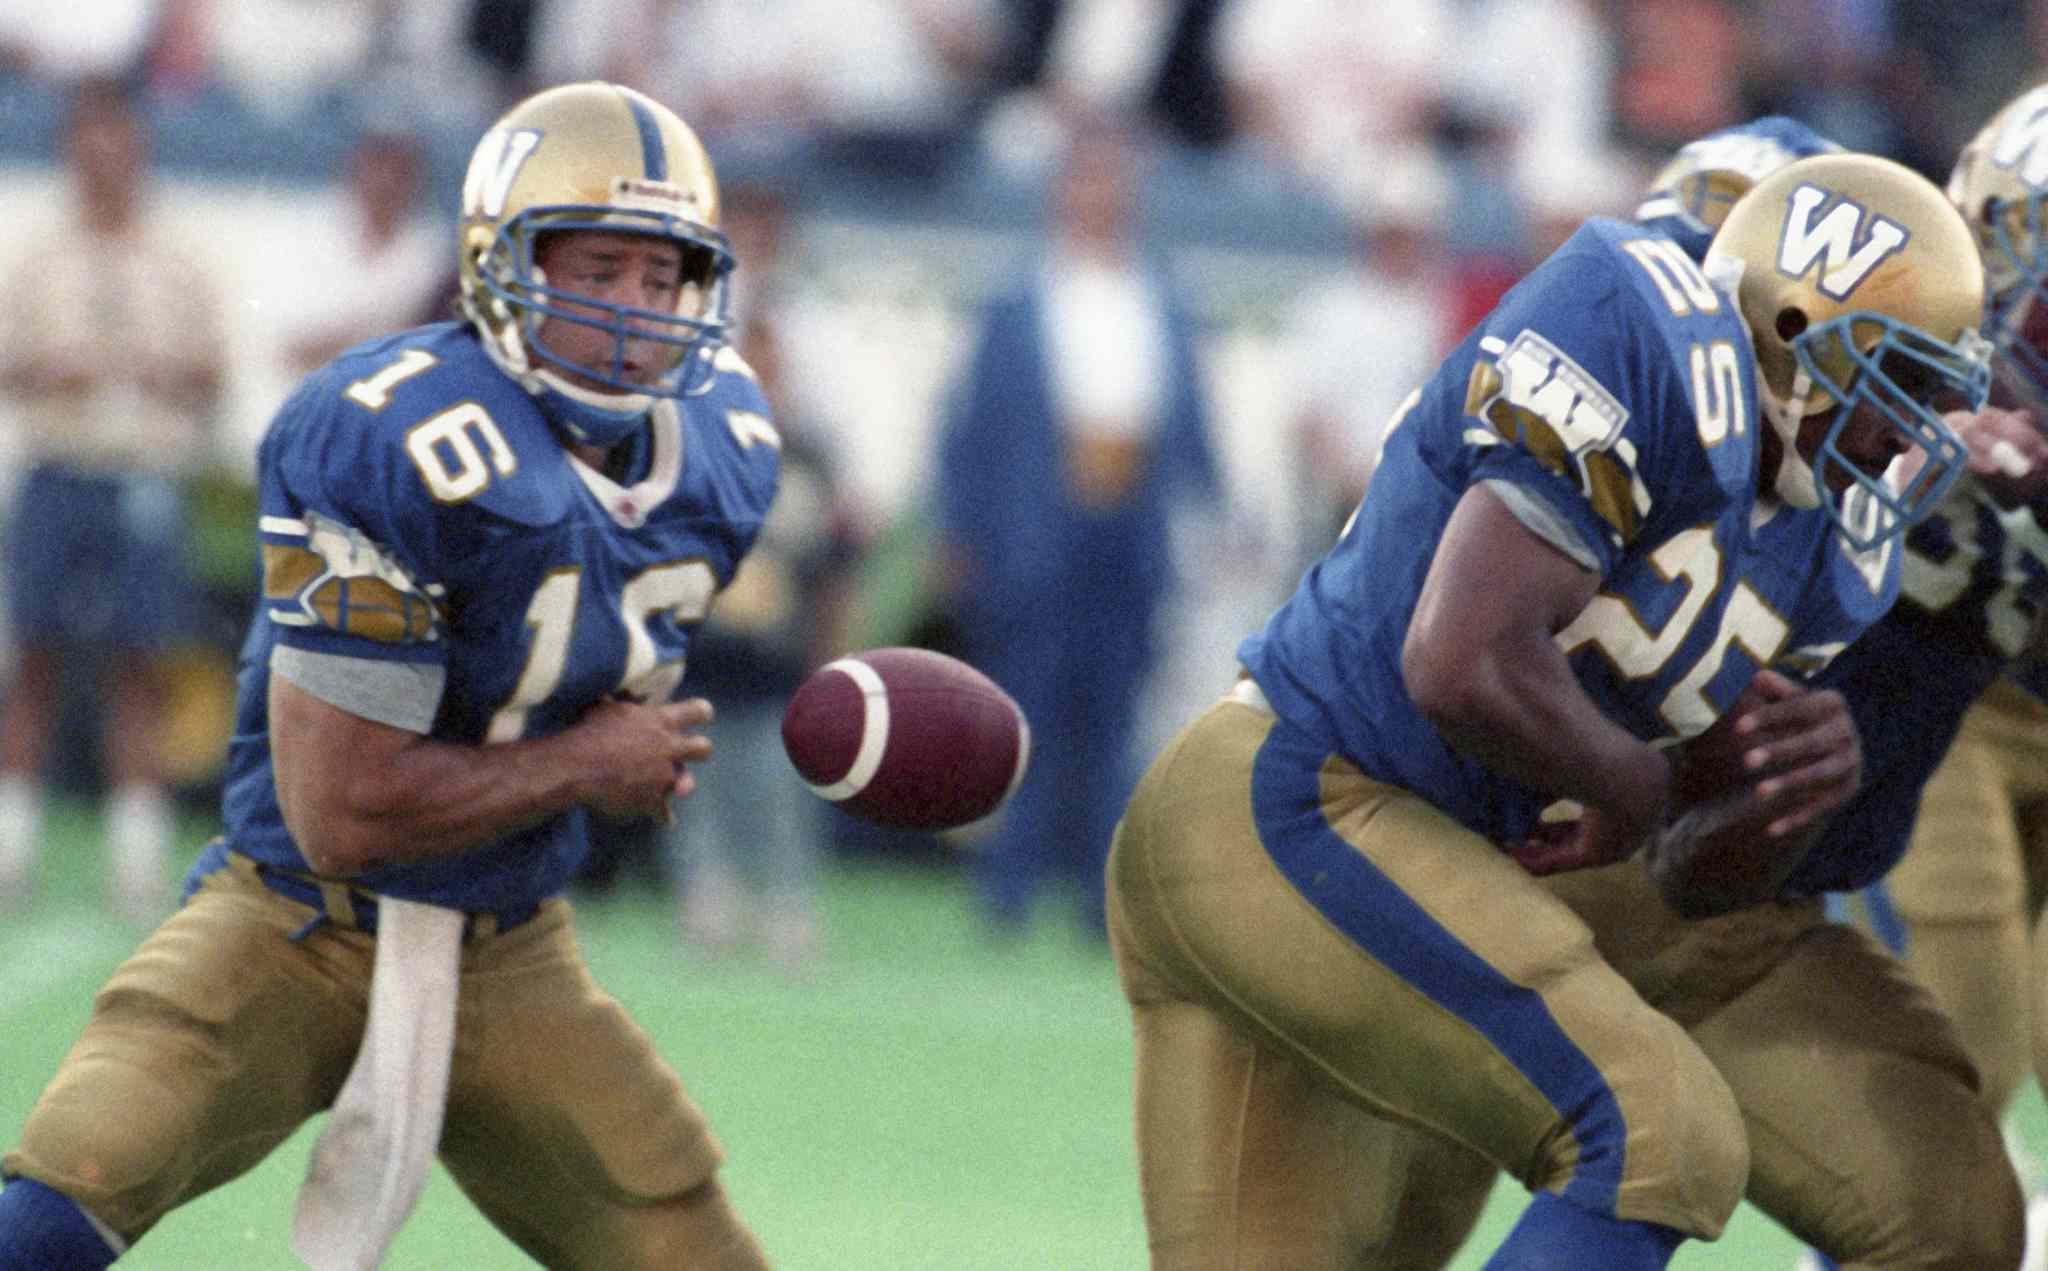 Matt Dunigan, No. 16 in the July 14, 1994 game